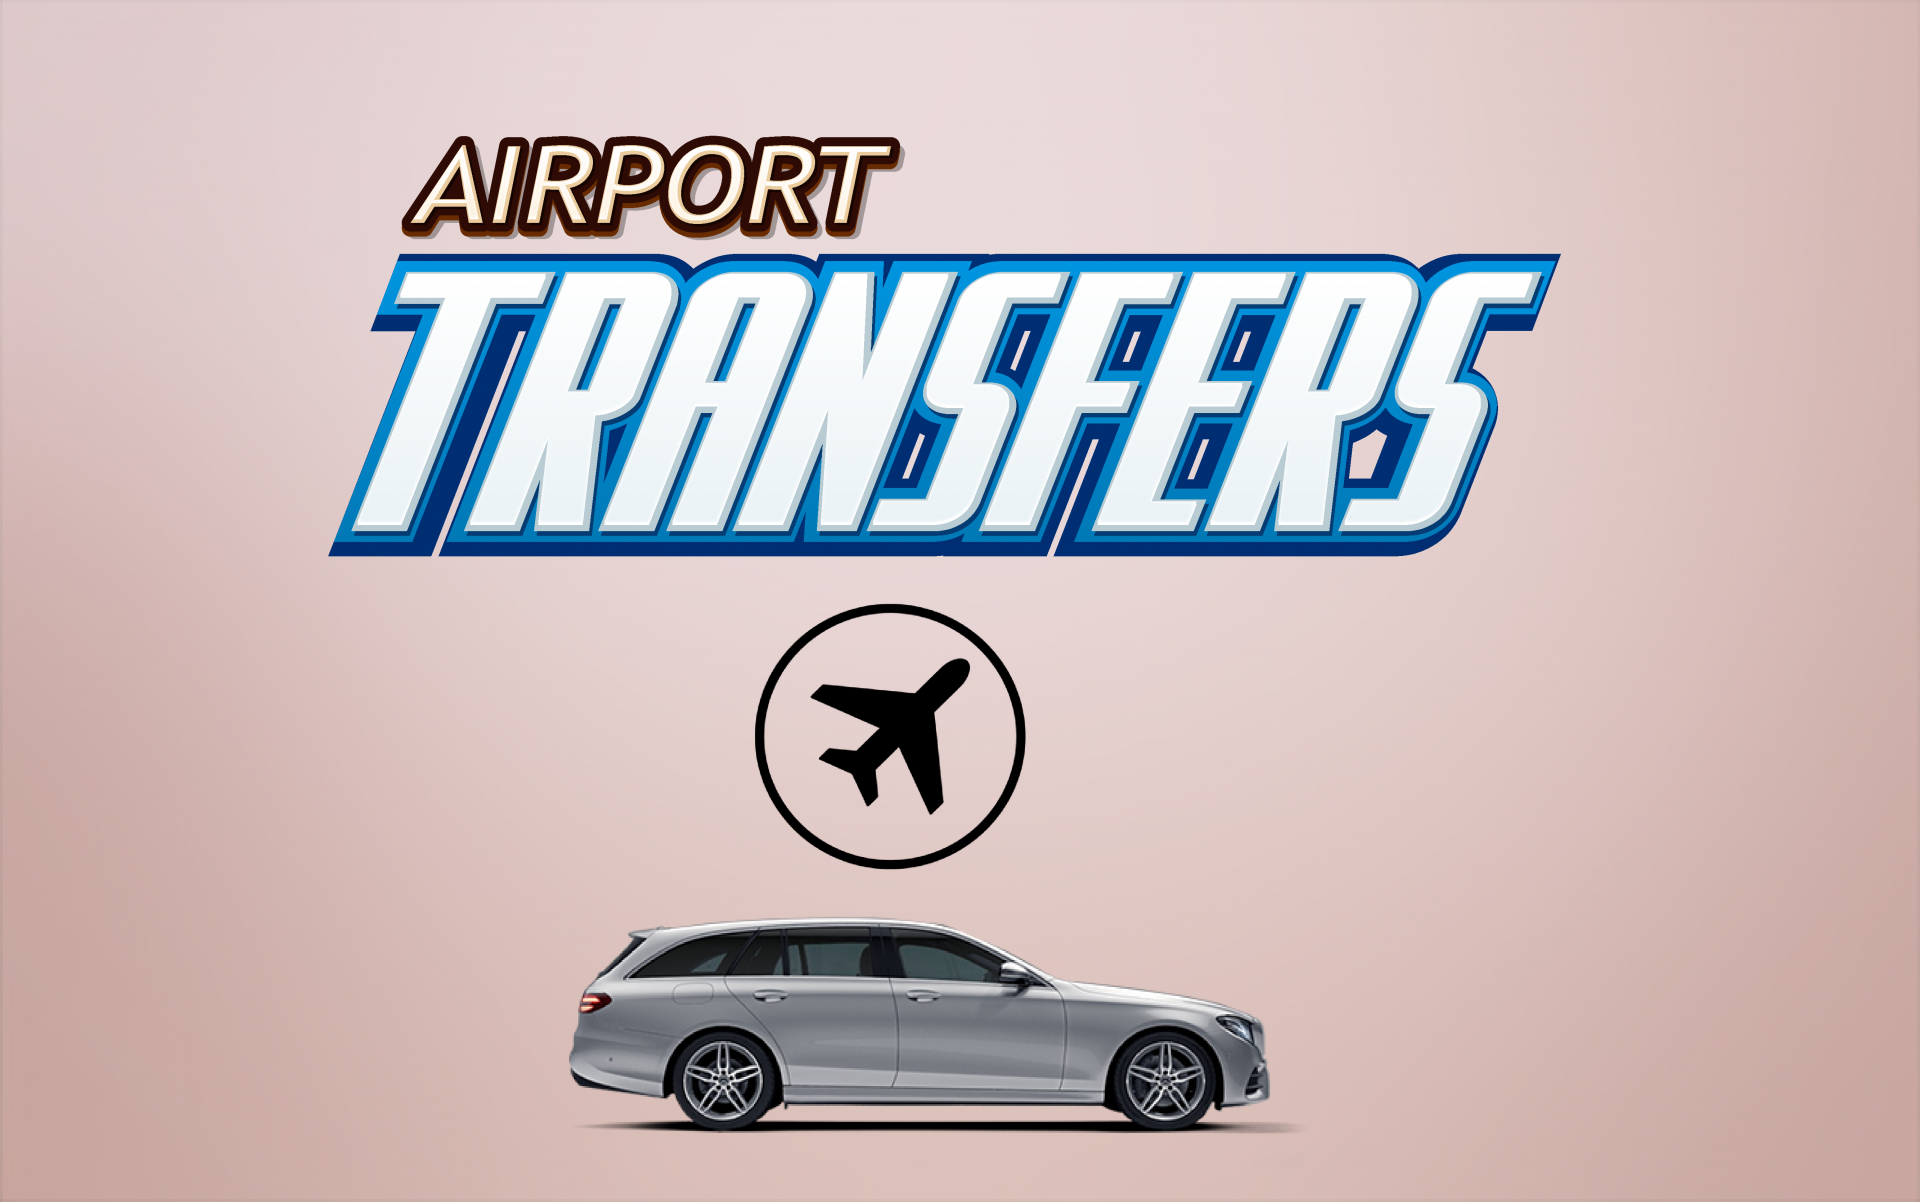 COVENTRY AIRPORT TRANSFERS